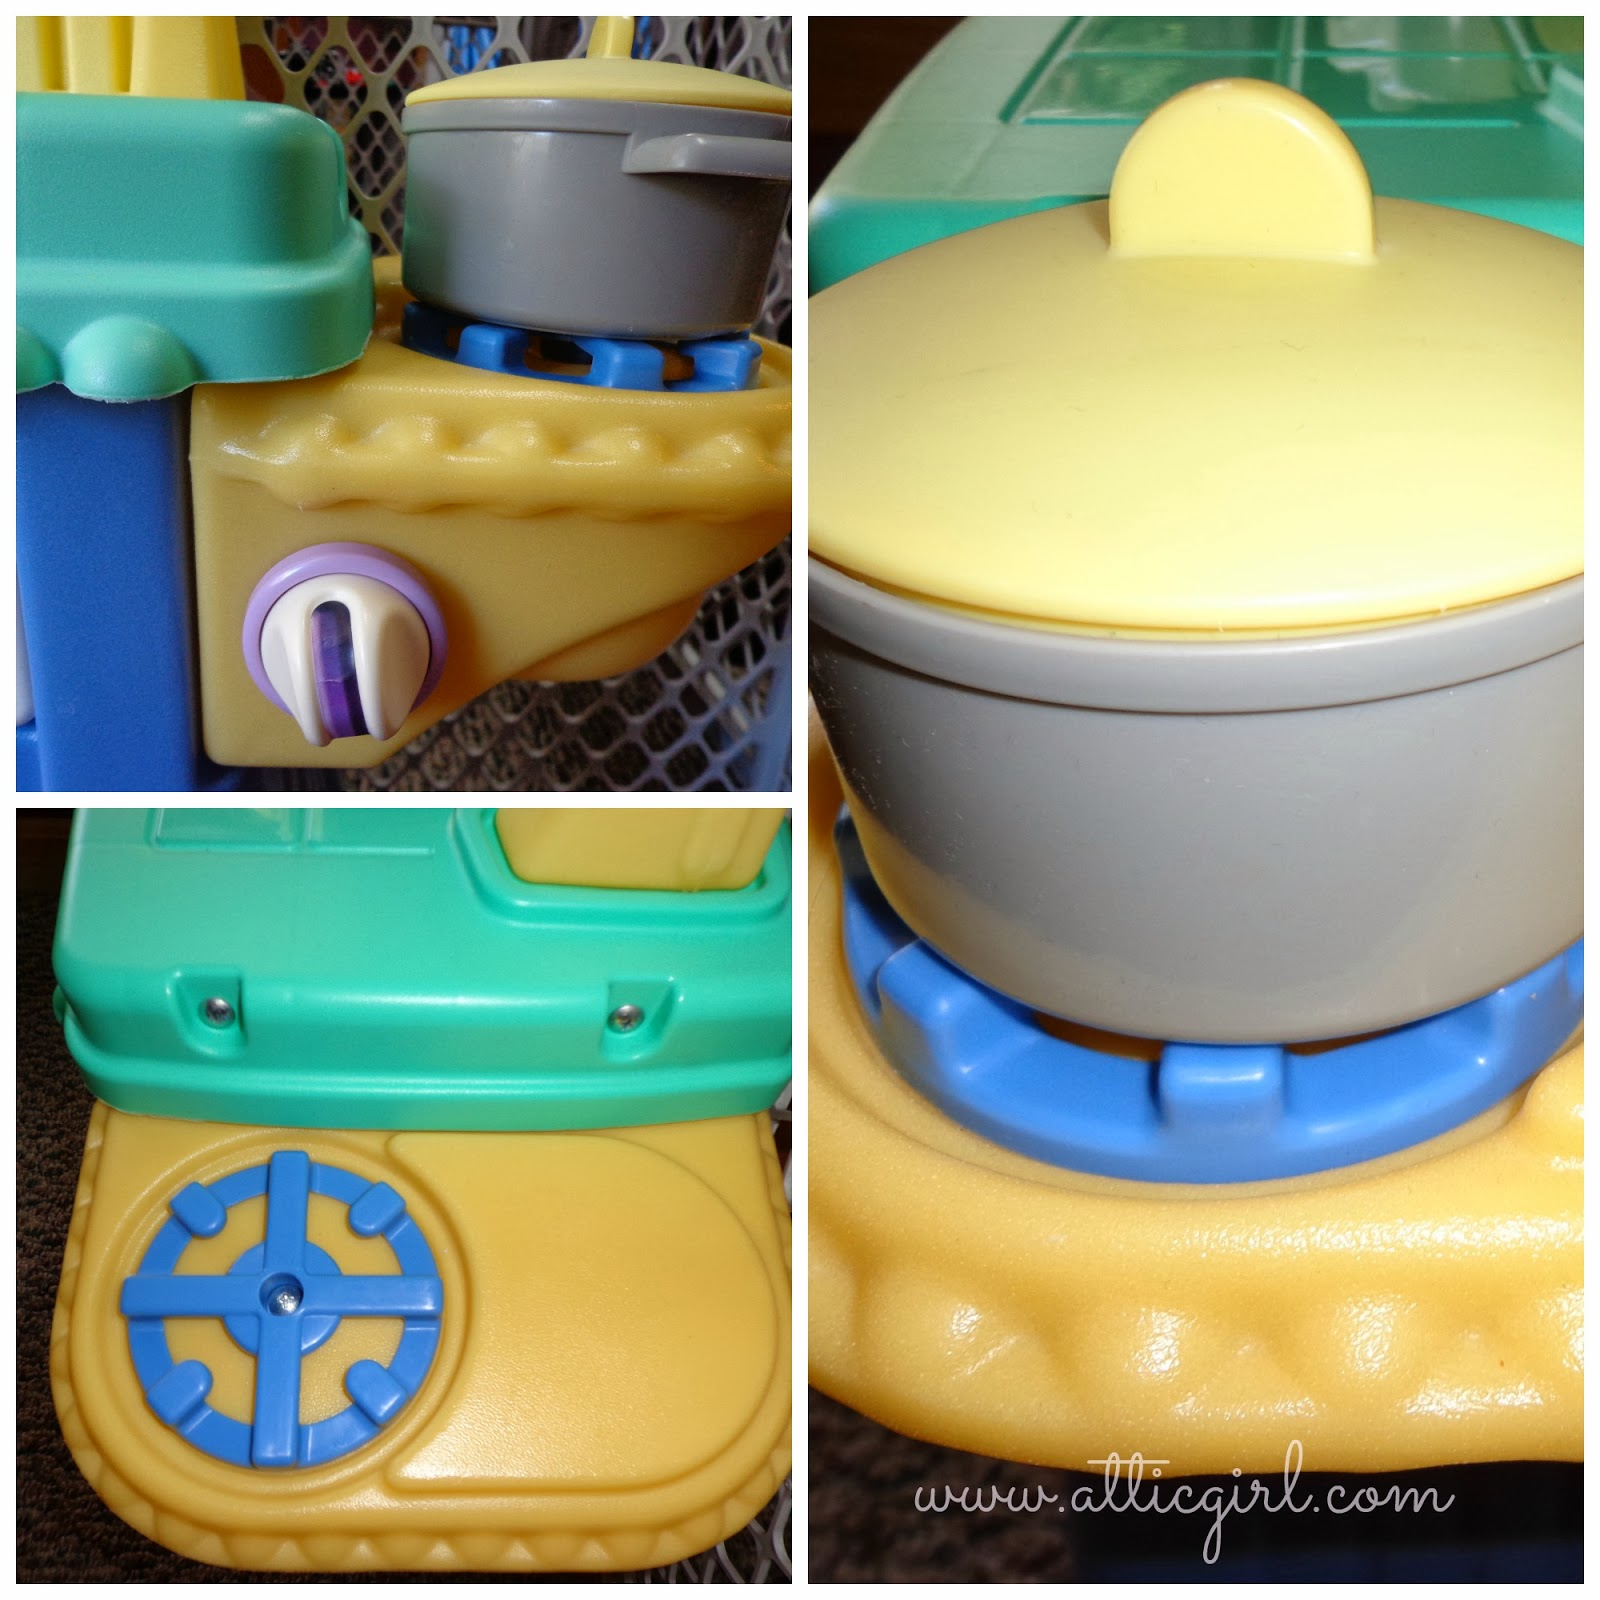 Little Tikes Cupcake Kitchen: Little Tikes Cupcake Kitchen {2013 Holiday Gift Guide}